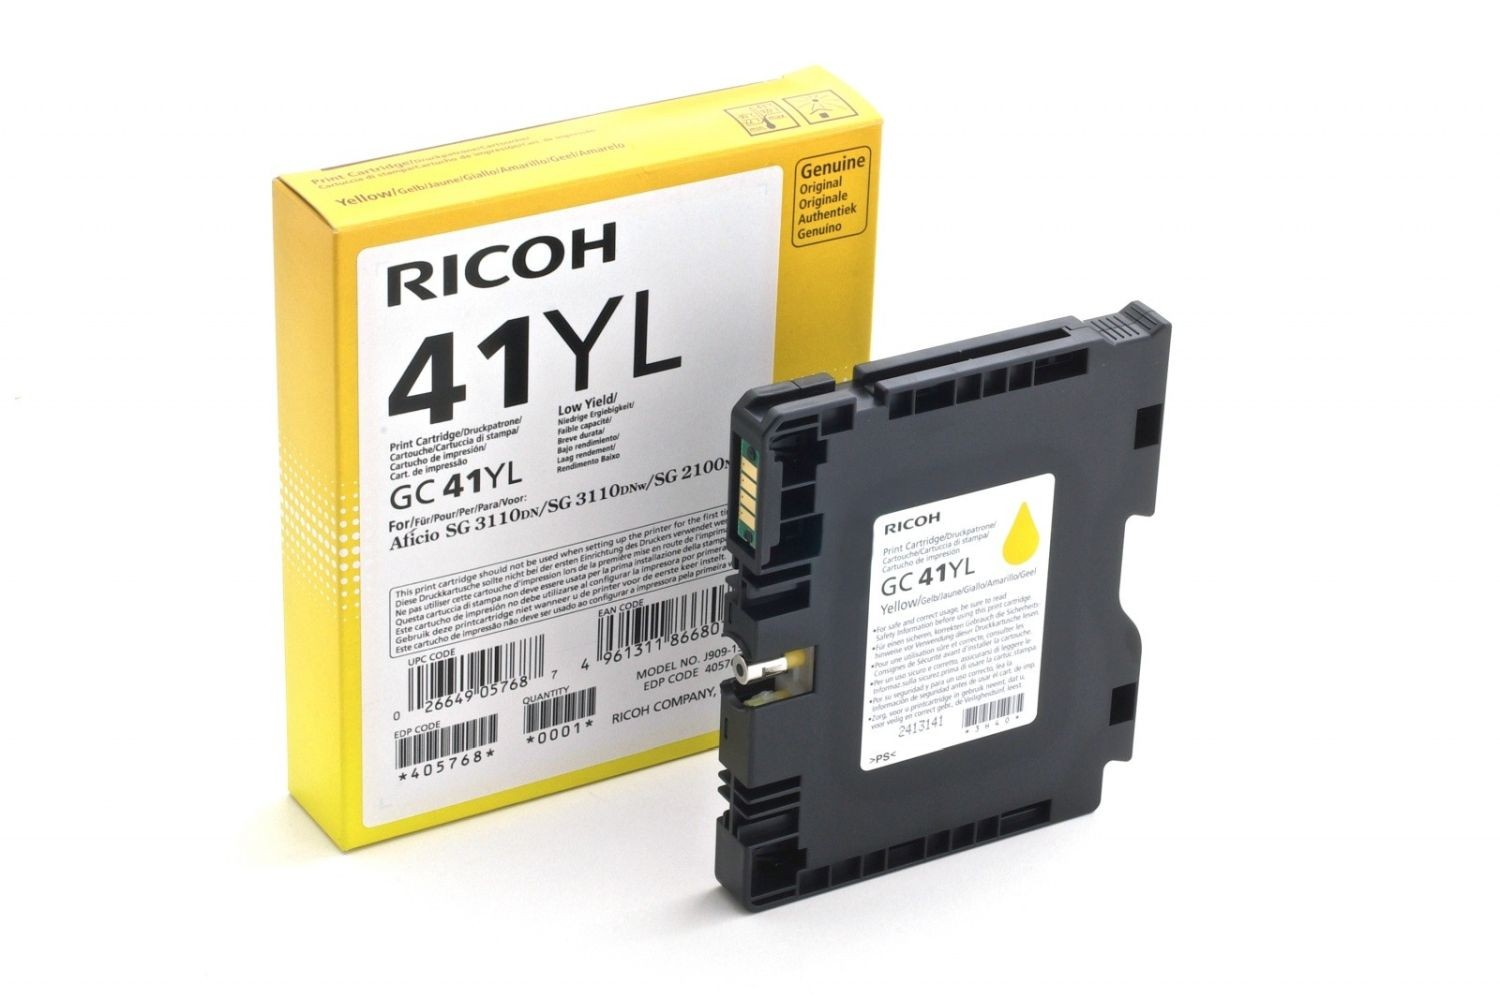 Ricoh Print Cartridge GC 41YL